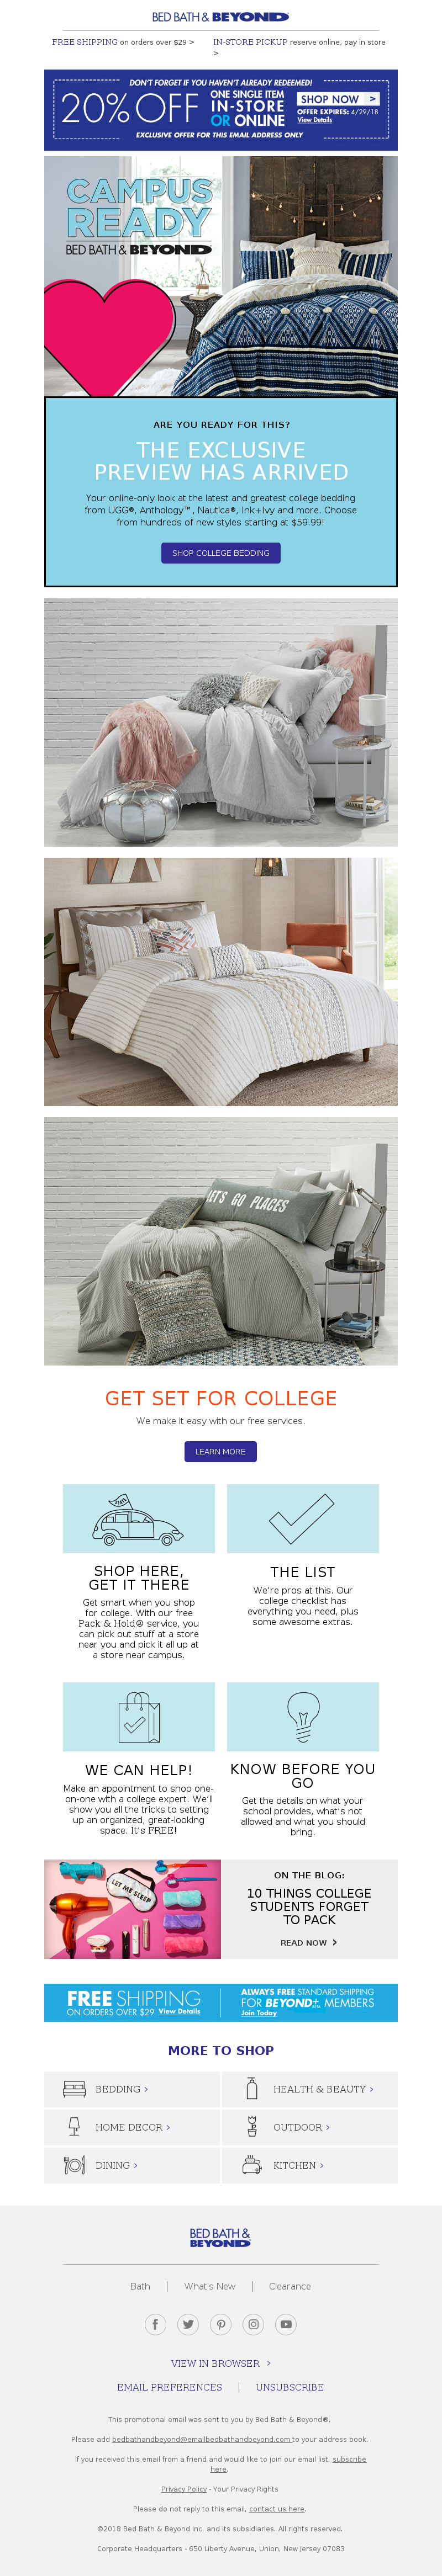 Bed Bath & Beyond - Your EXCLUSIVE preview and 20% off coupon is here!